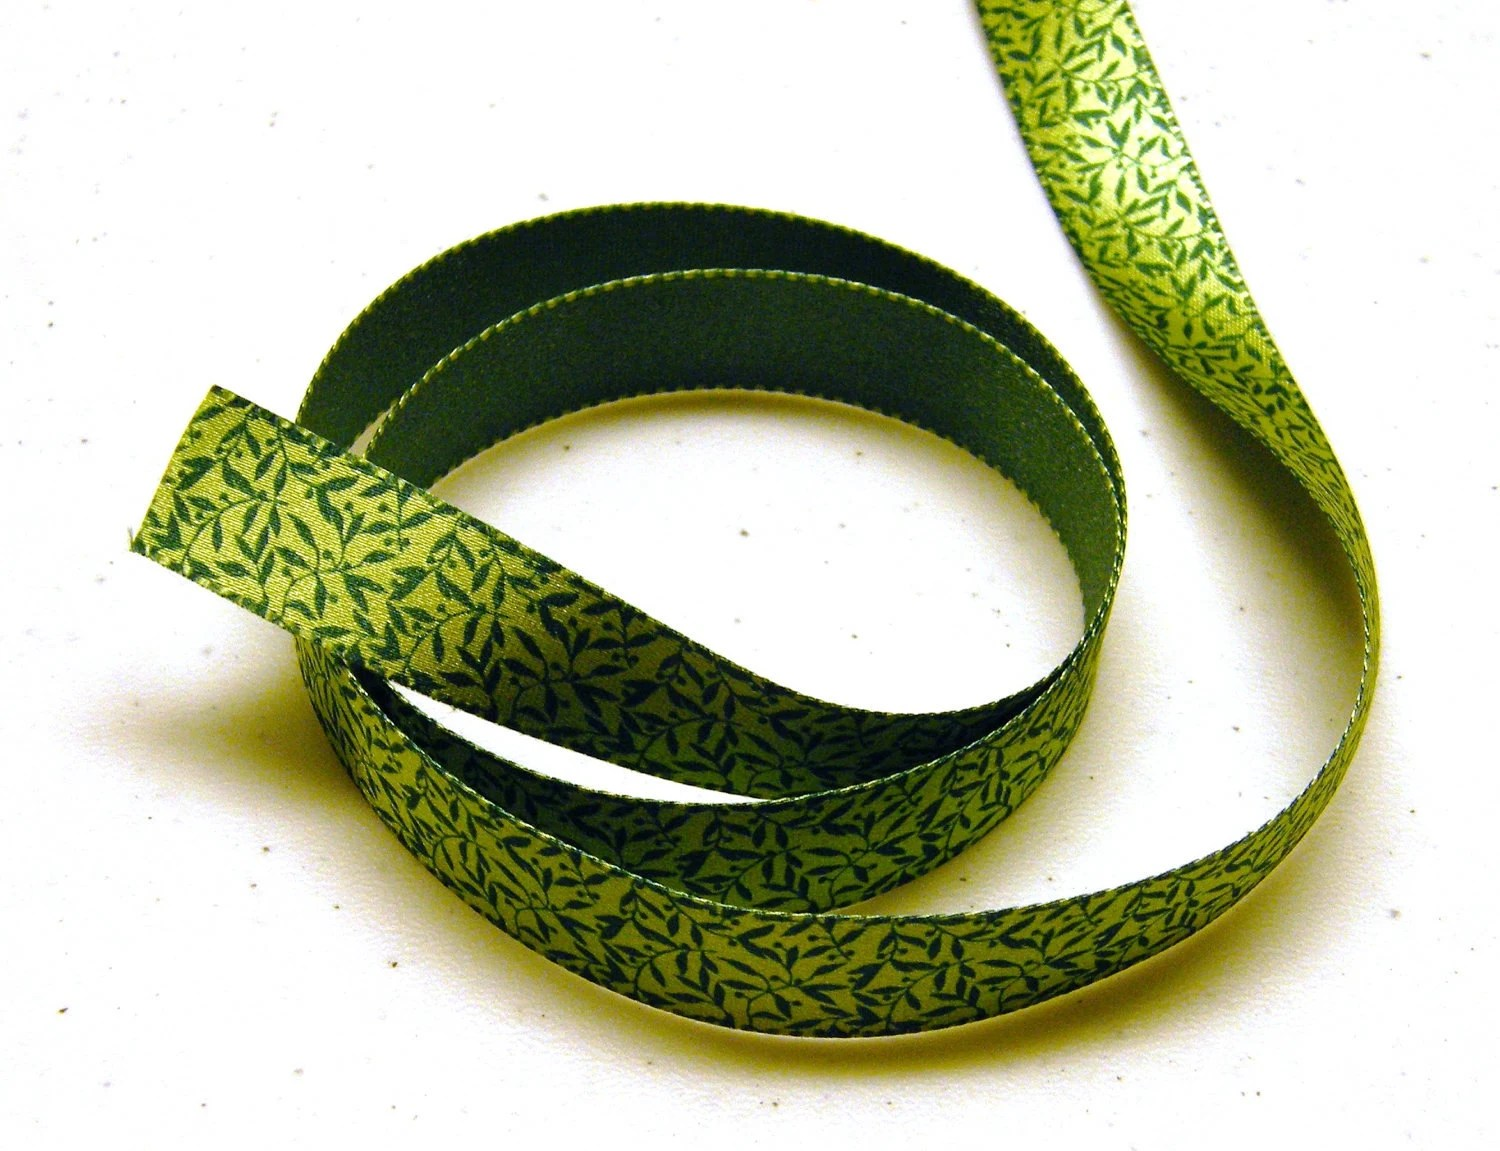 Green Leaves Reversible Satin Ribbon - Martha Stewart 5/8 in x 3 yd - OwlShop